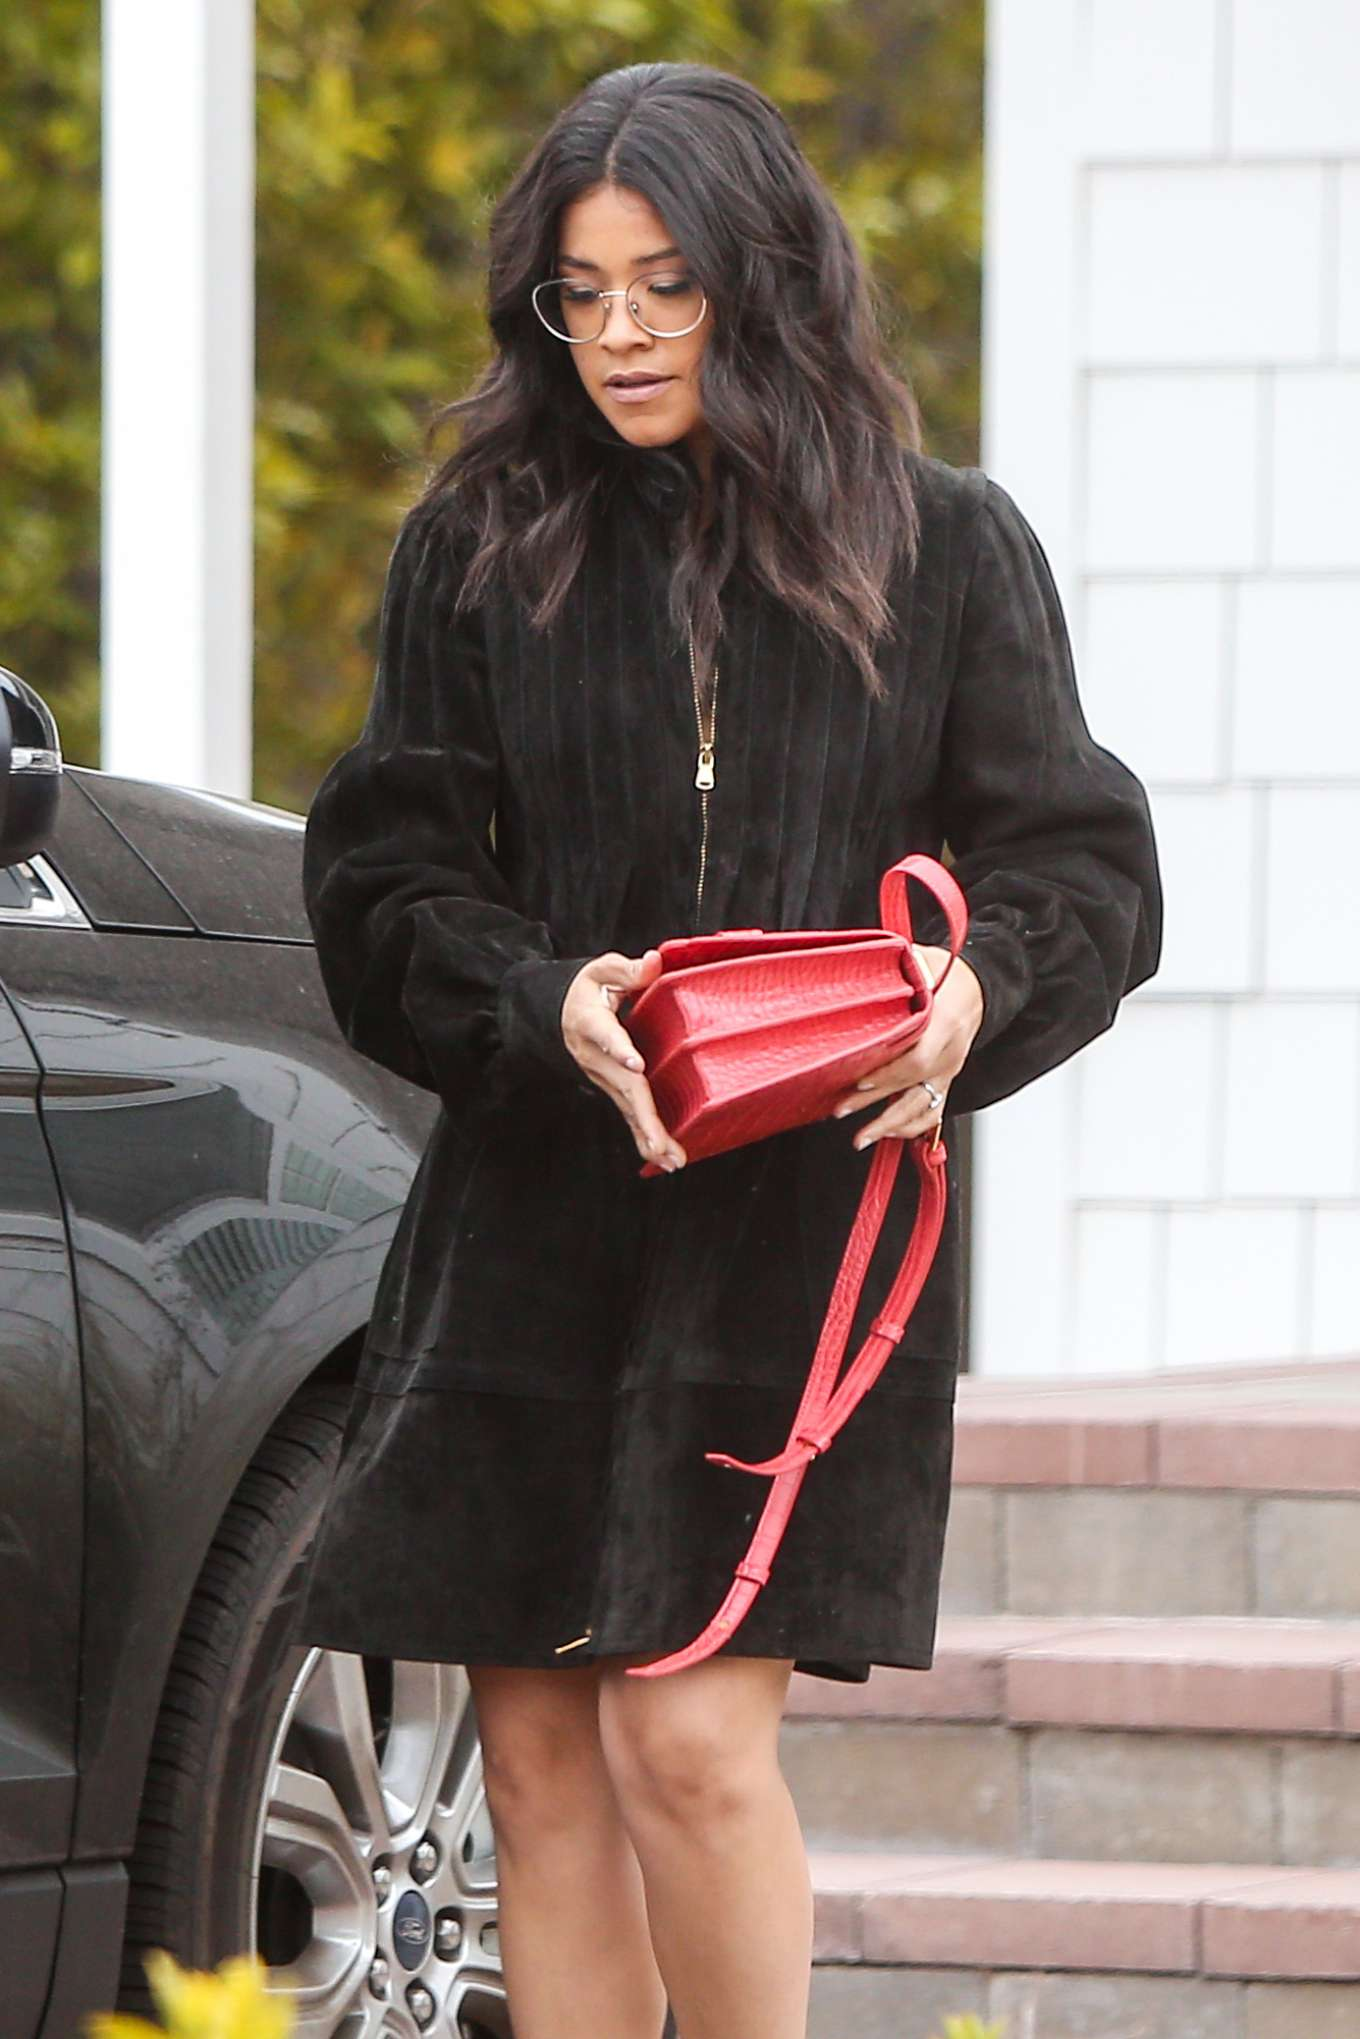 Gina Rodriguez 2019 : Gina Rodriguez: Out in Los Angeles -09